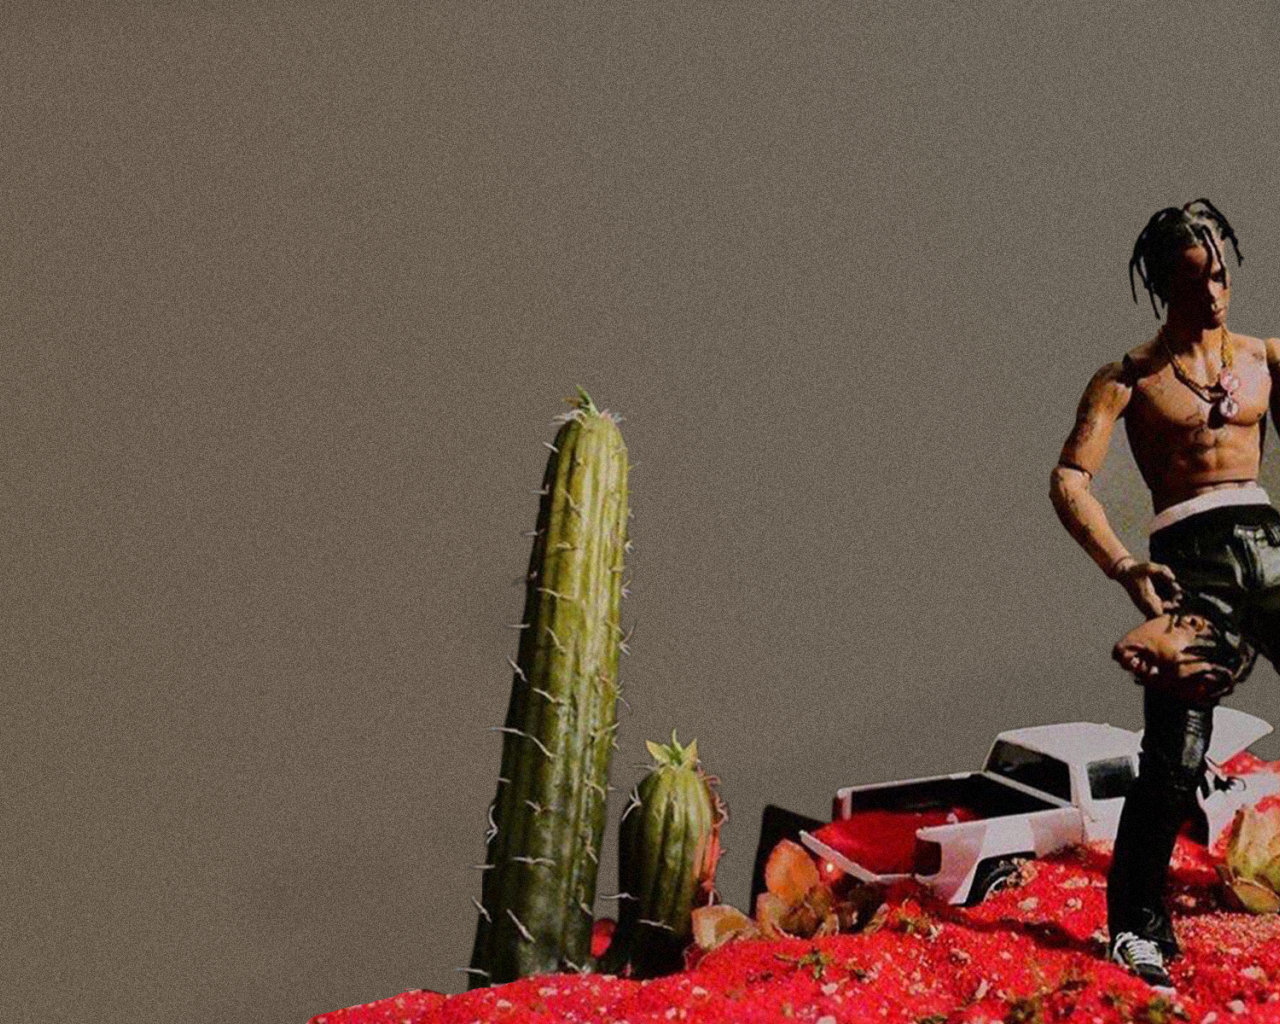 Free Download Turned That Rodeo Photoshoot Into A 1080p Desktop